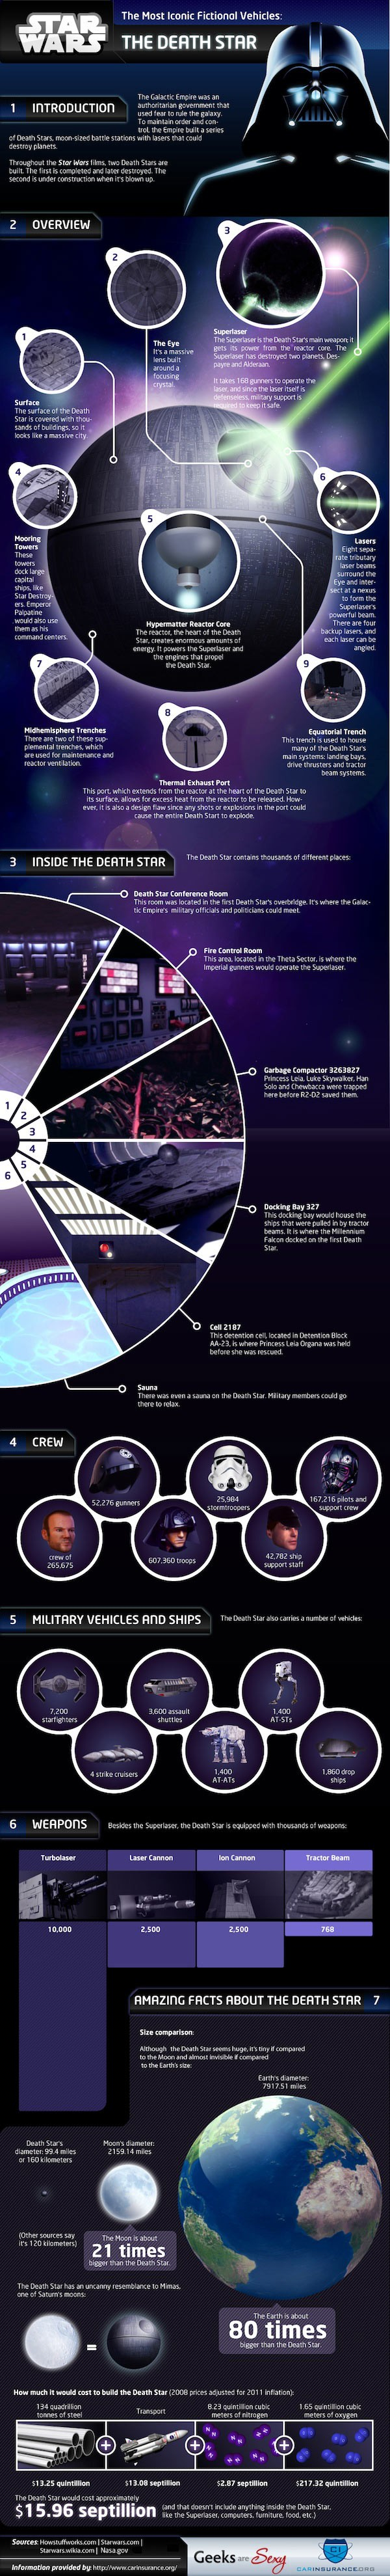 In Depth Death Star Information